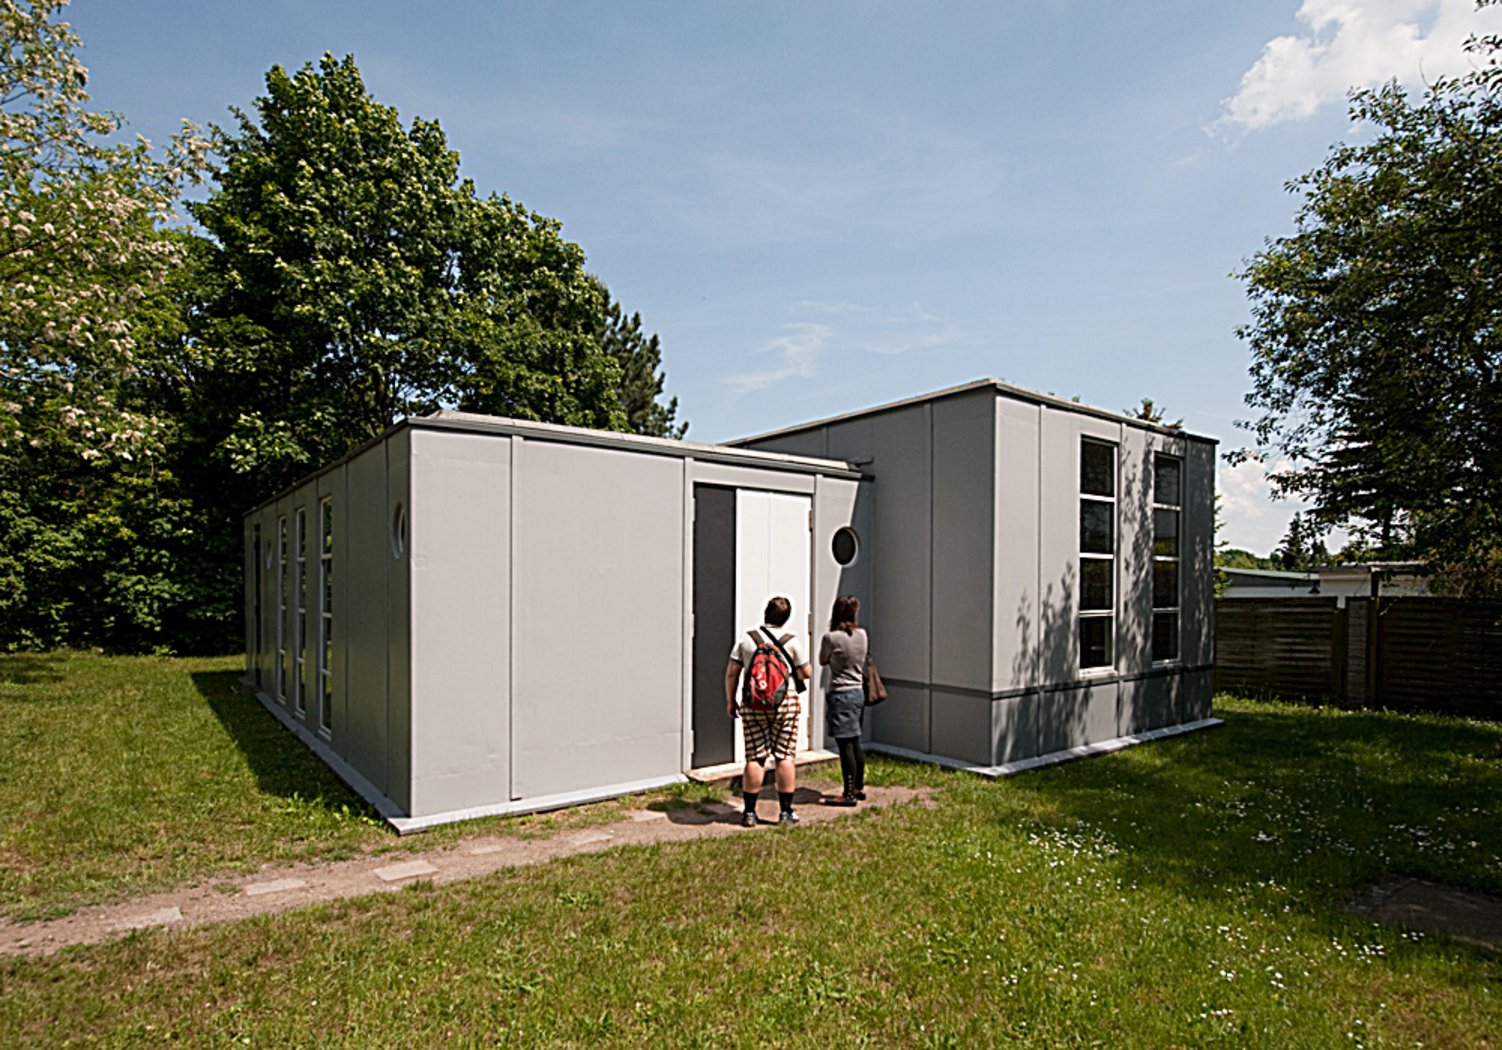 Container Haus Cube Steel House By Georg Muche And Richard Paulick 1926 27 Bauhaus